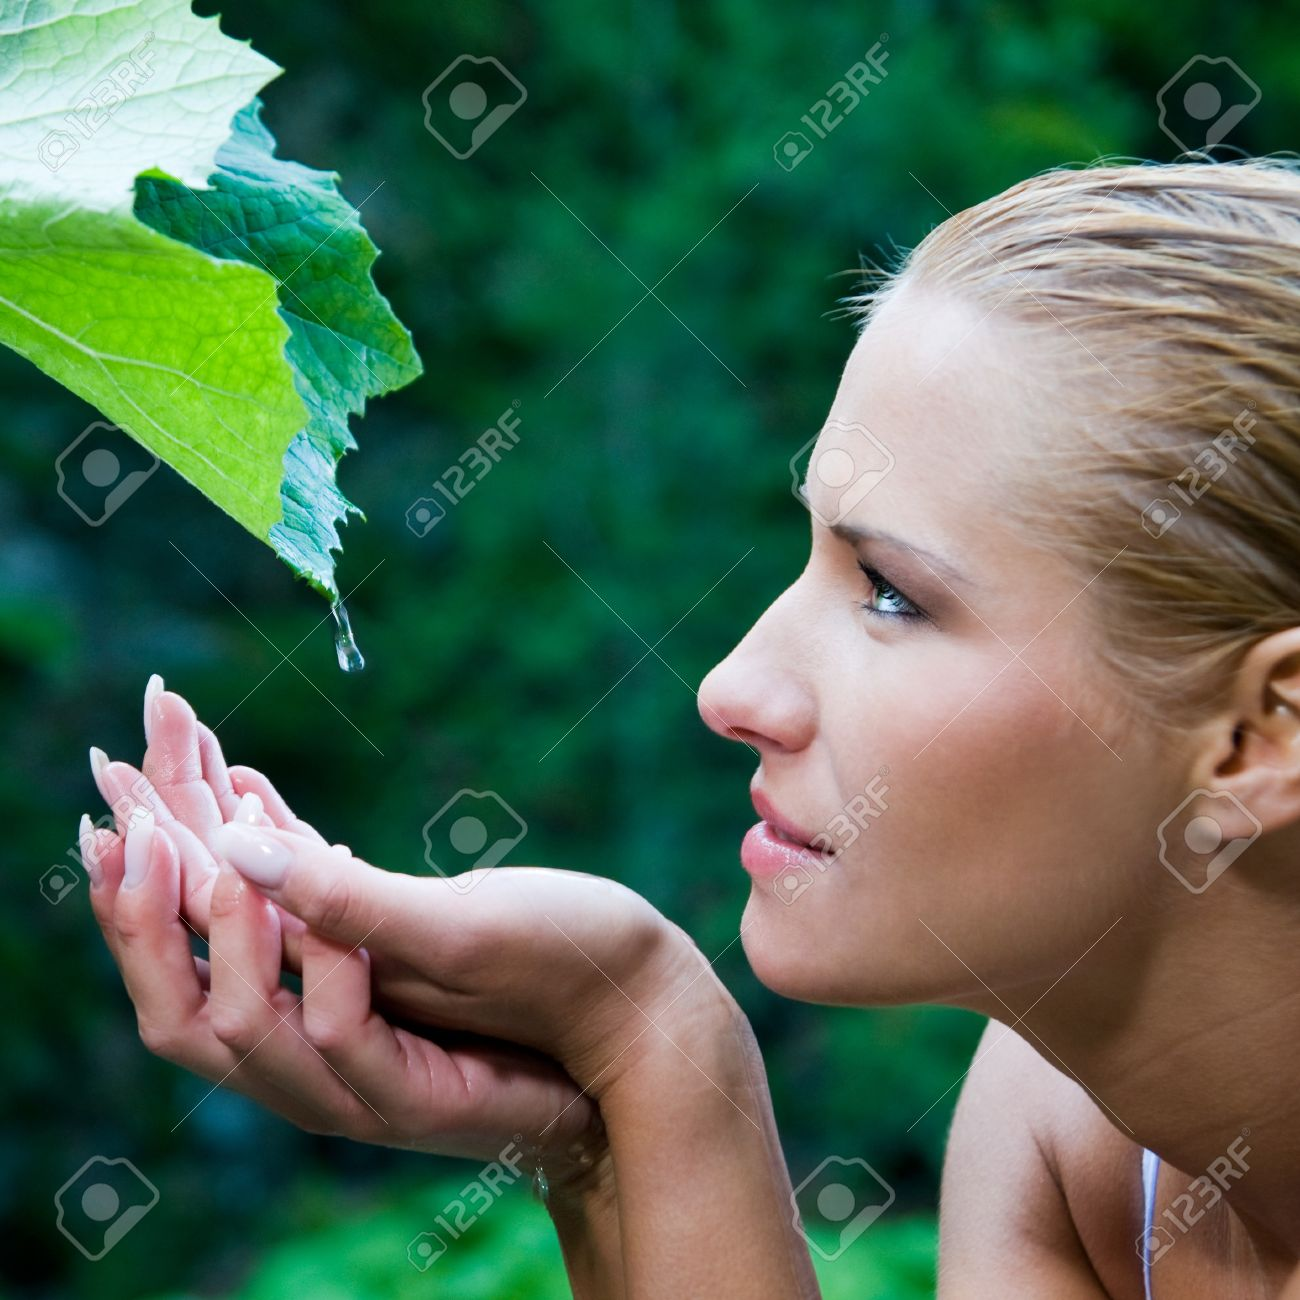 Beautiful young woman take a drop of clear water from a leaf in the nature. Symbol of purity, body care and nature harmony Stock Photo - 8235117